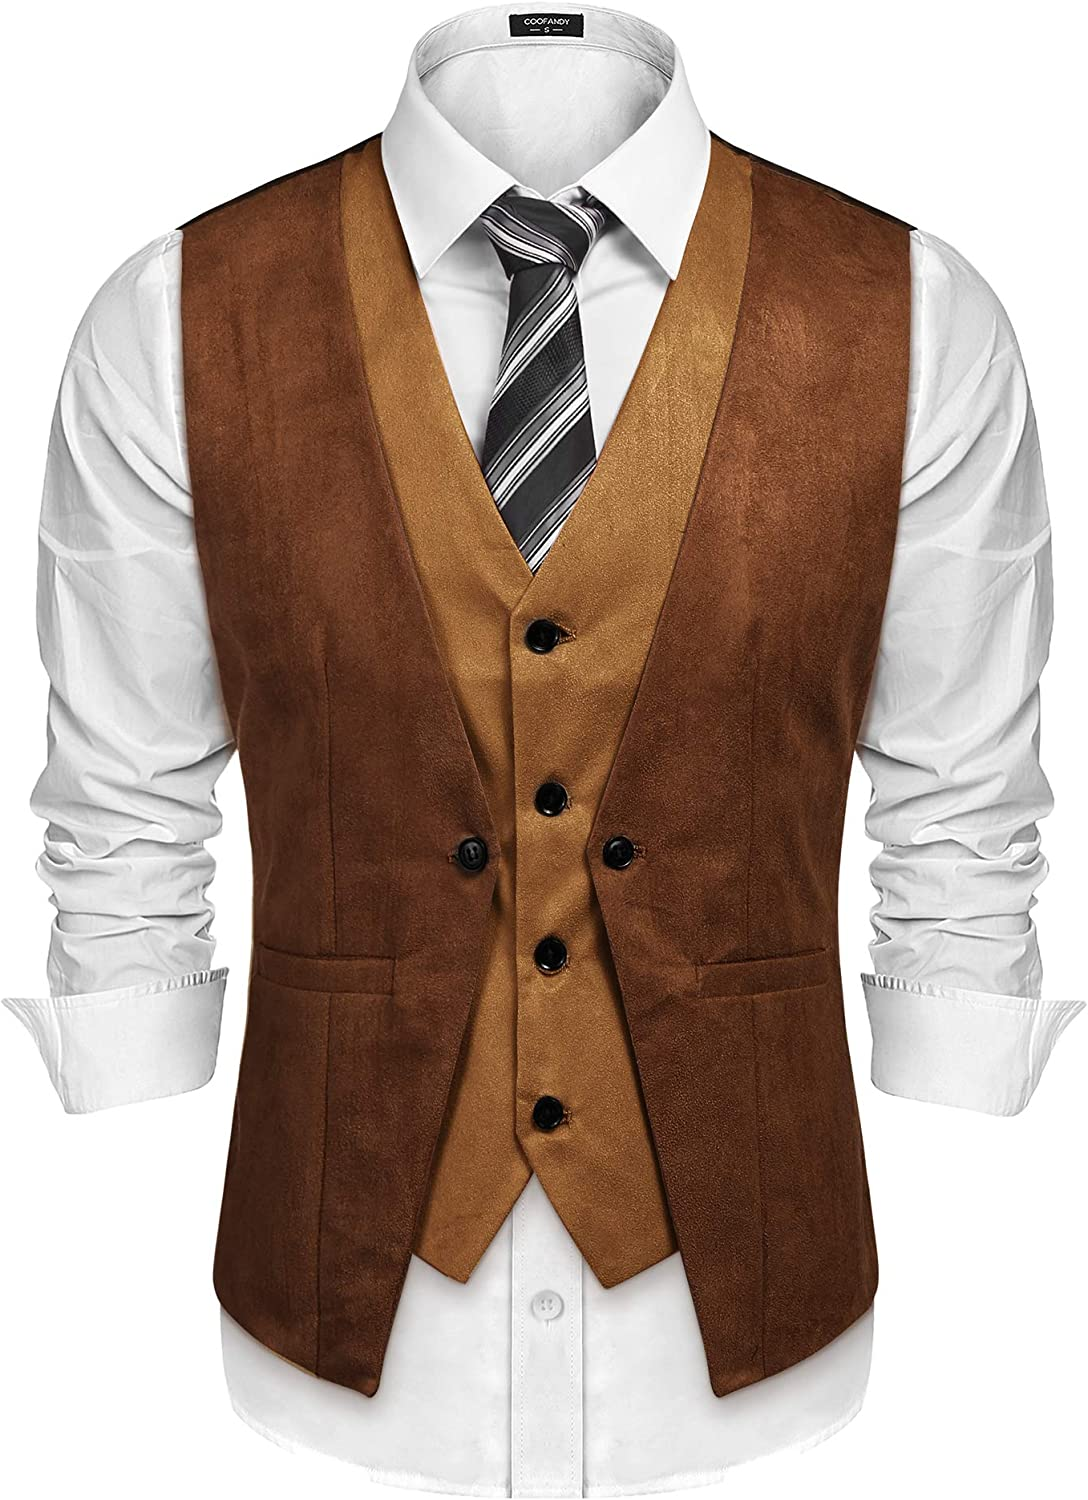 COOFANDY Men's Suede Leather Vest Layered Style Dress Vest Waistcoat